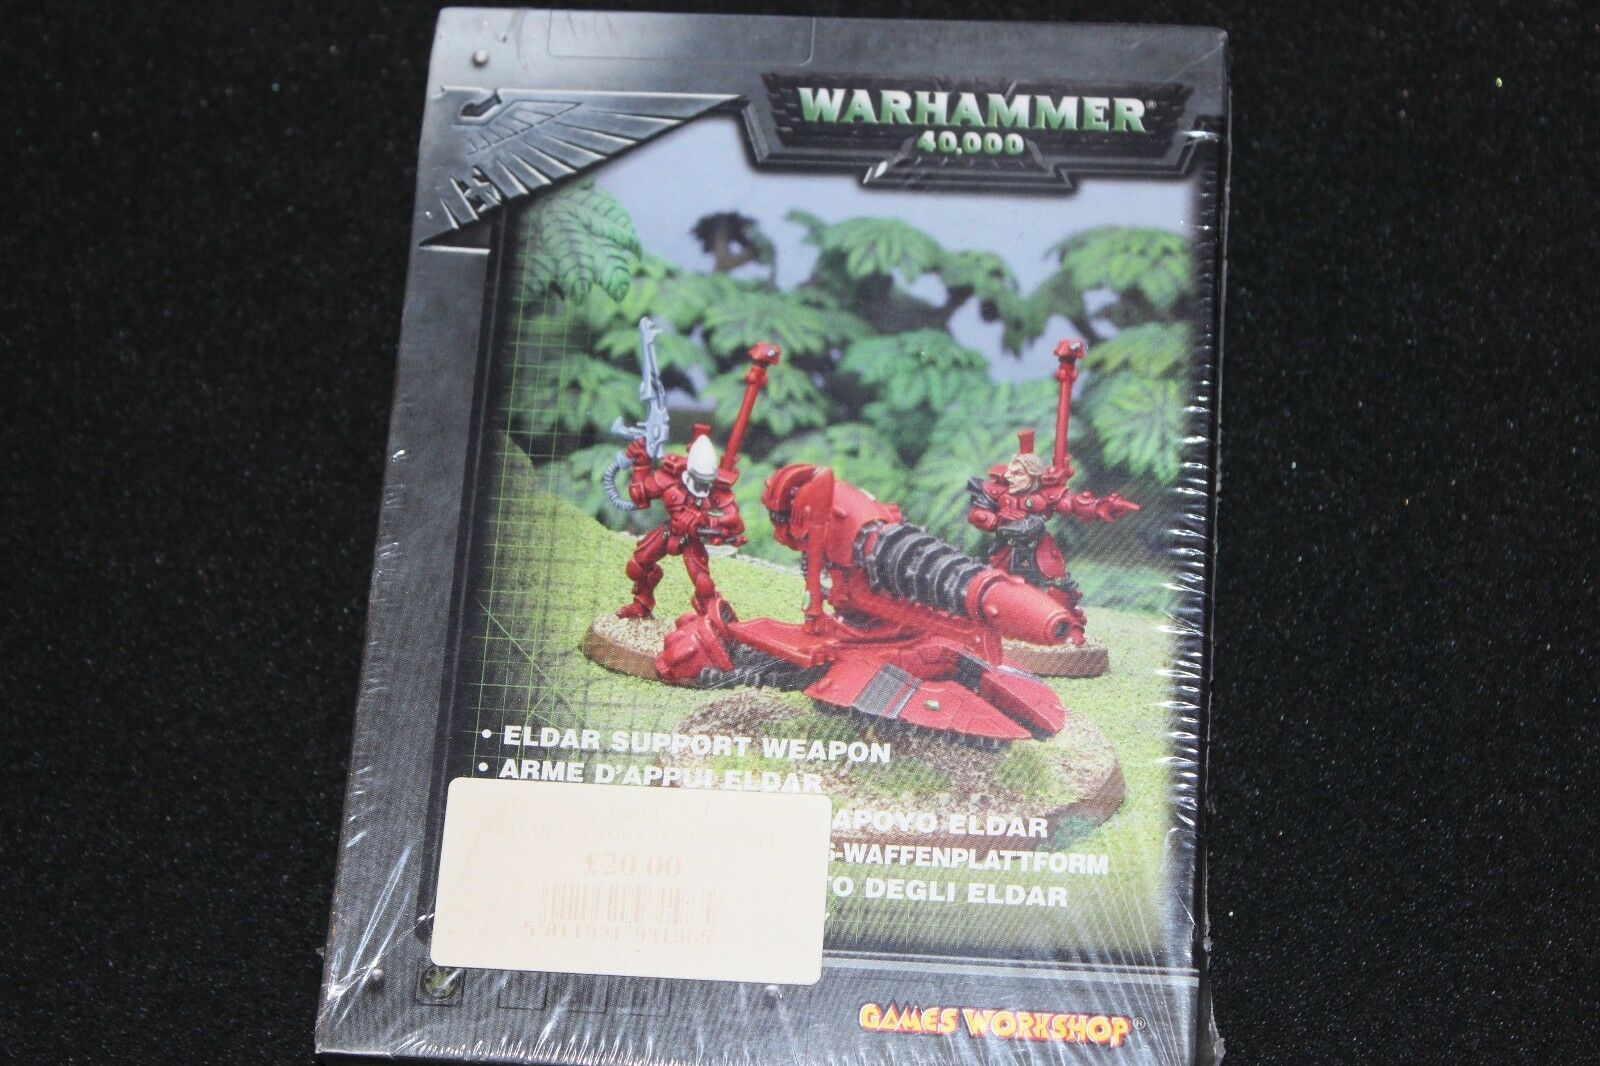 Games Workshop Warhammer 40k Eldar Support Weapon Metal BNIB New WH40K OOP Heavy